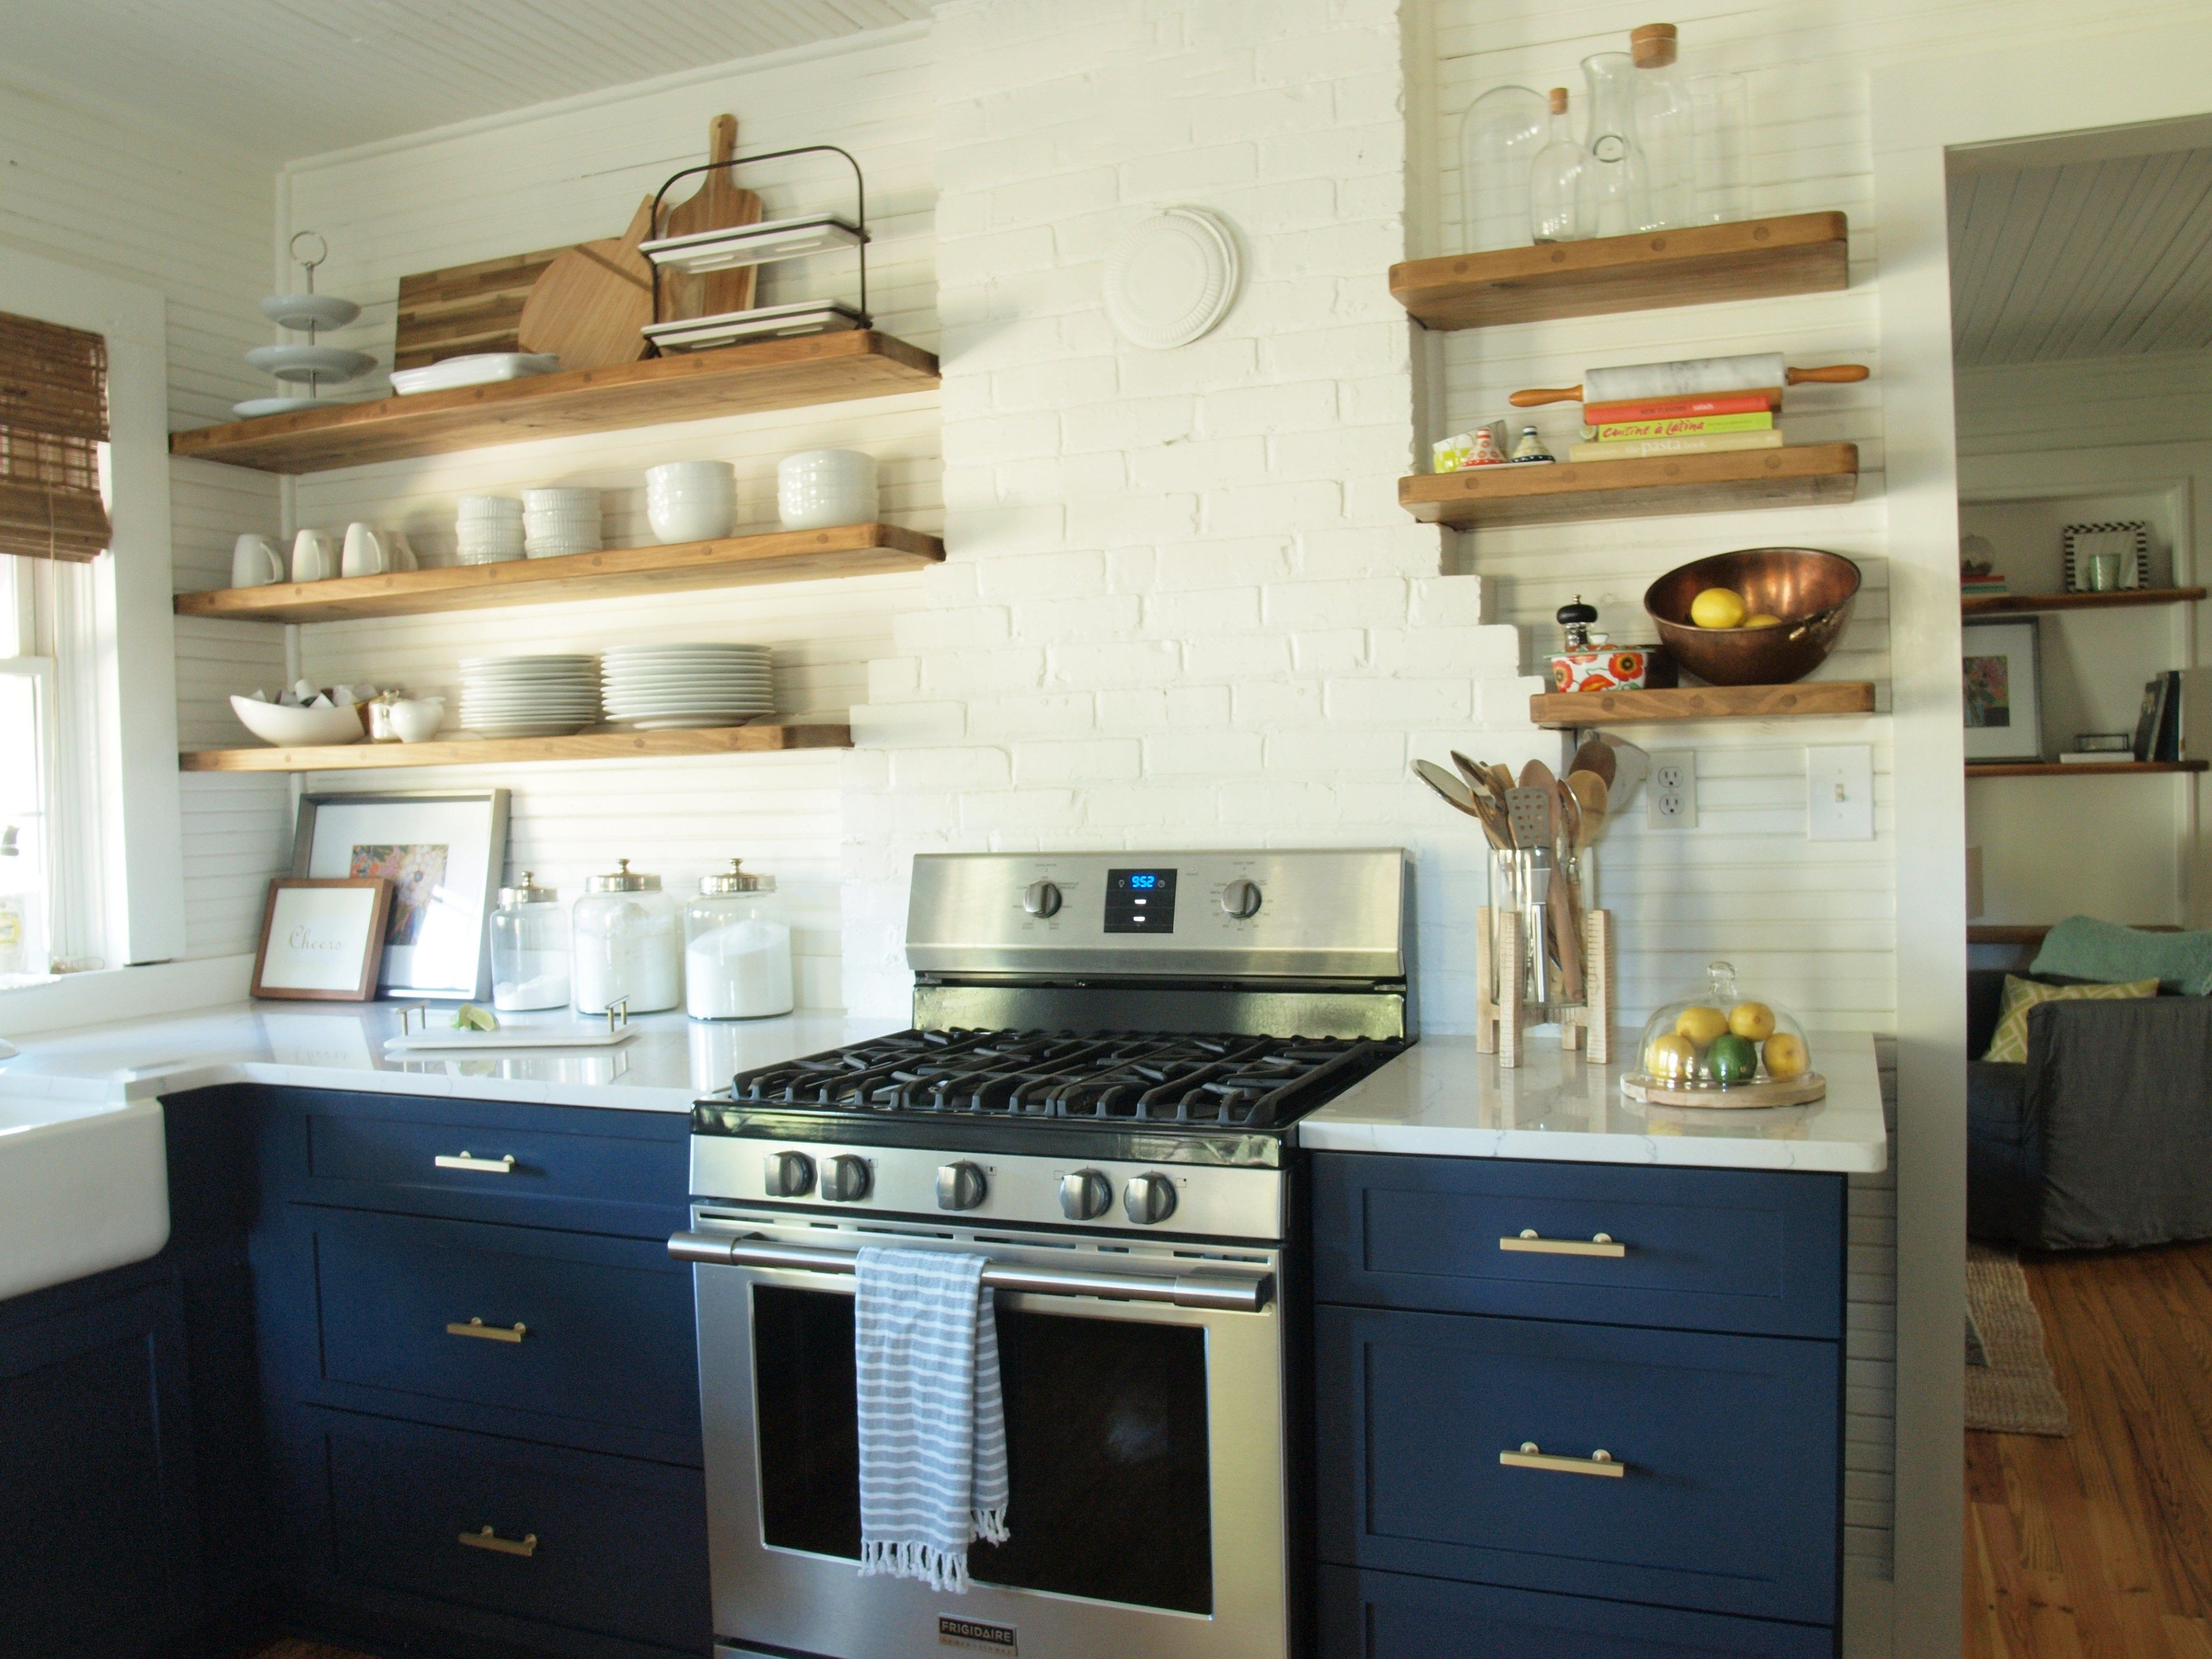 Navy kitchen cabinets with open shelving | Photo Shoot Ideas ...